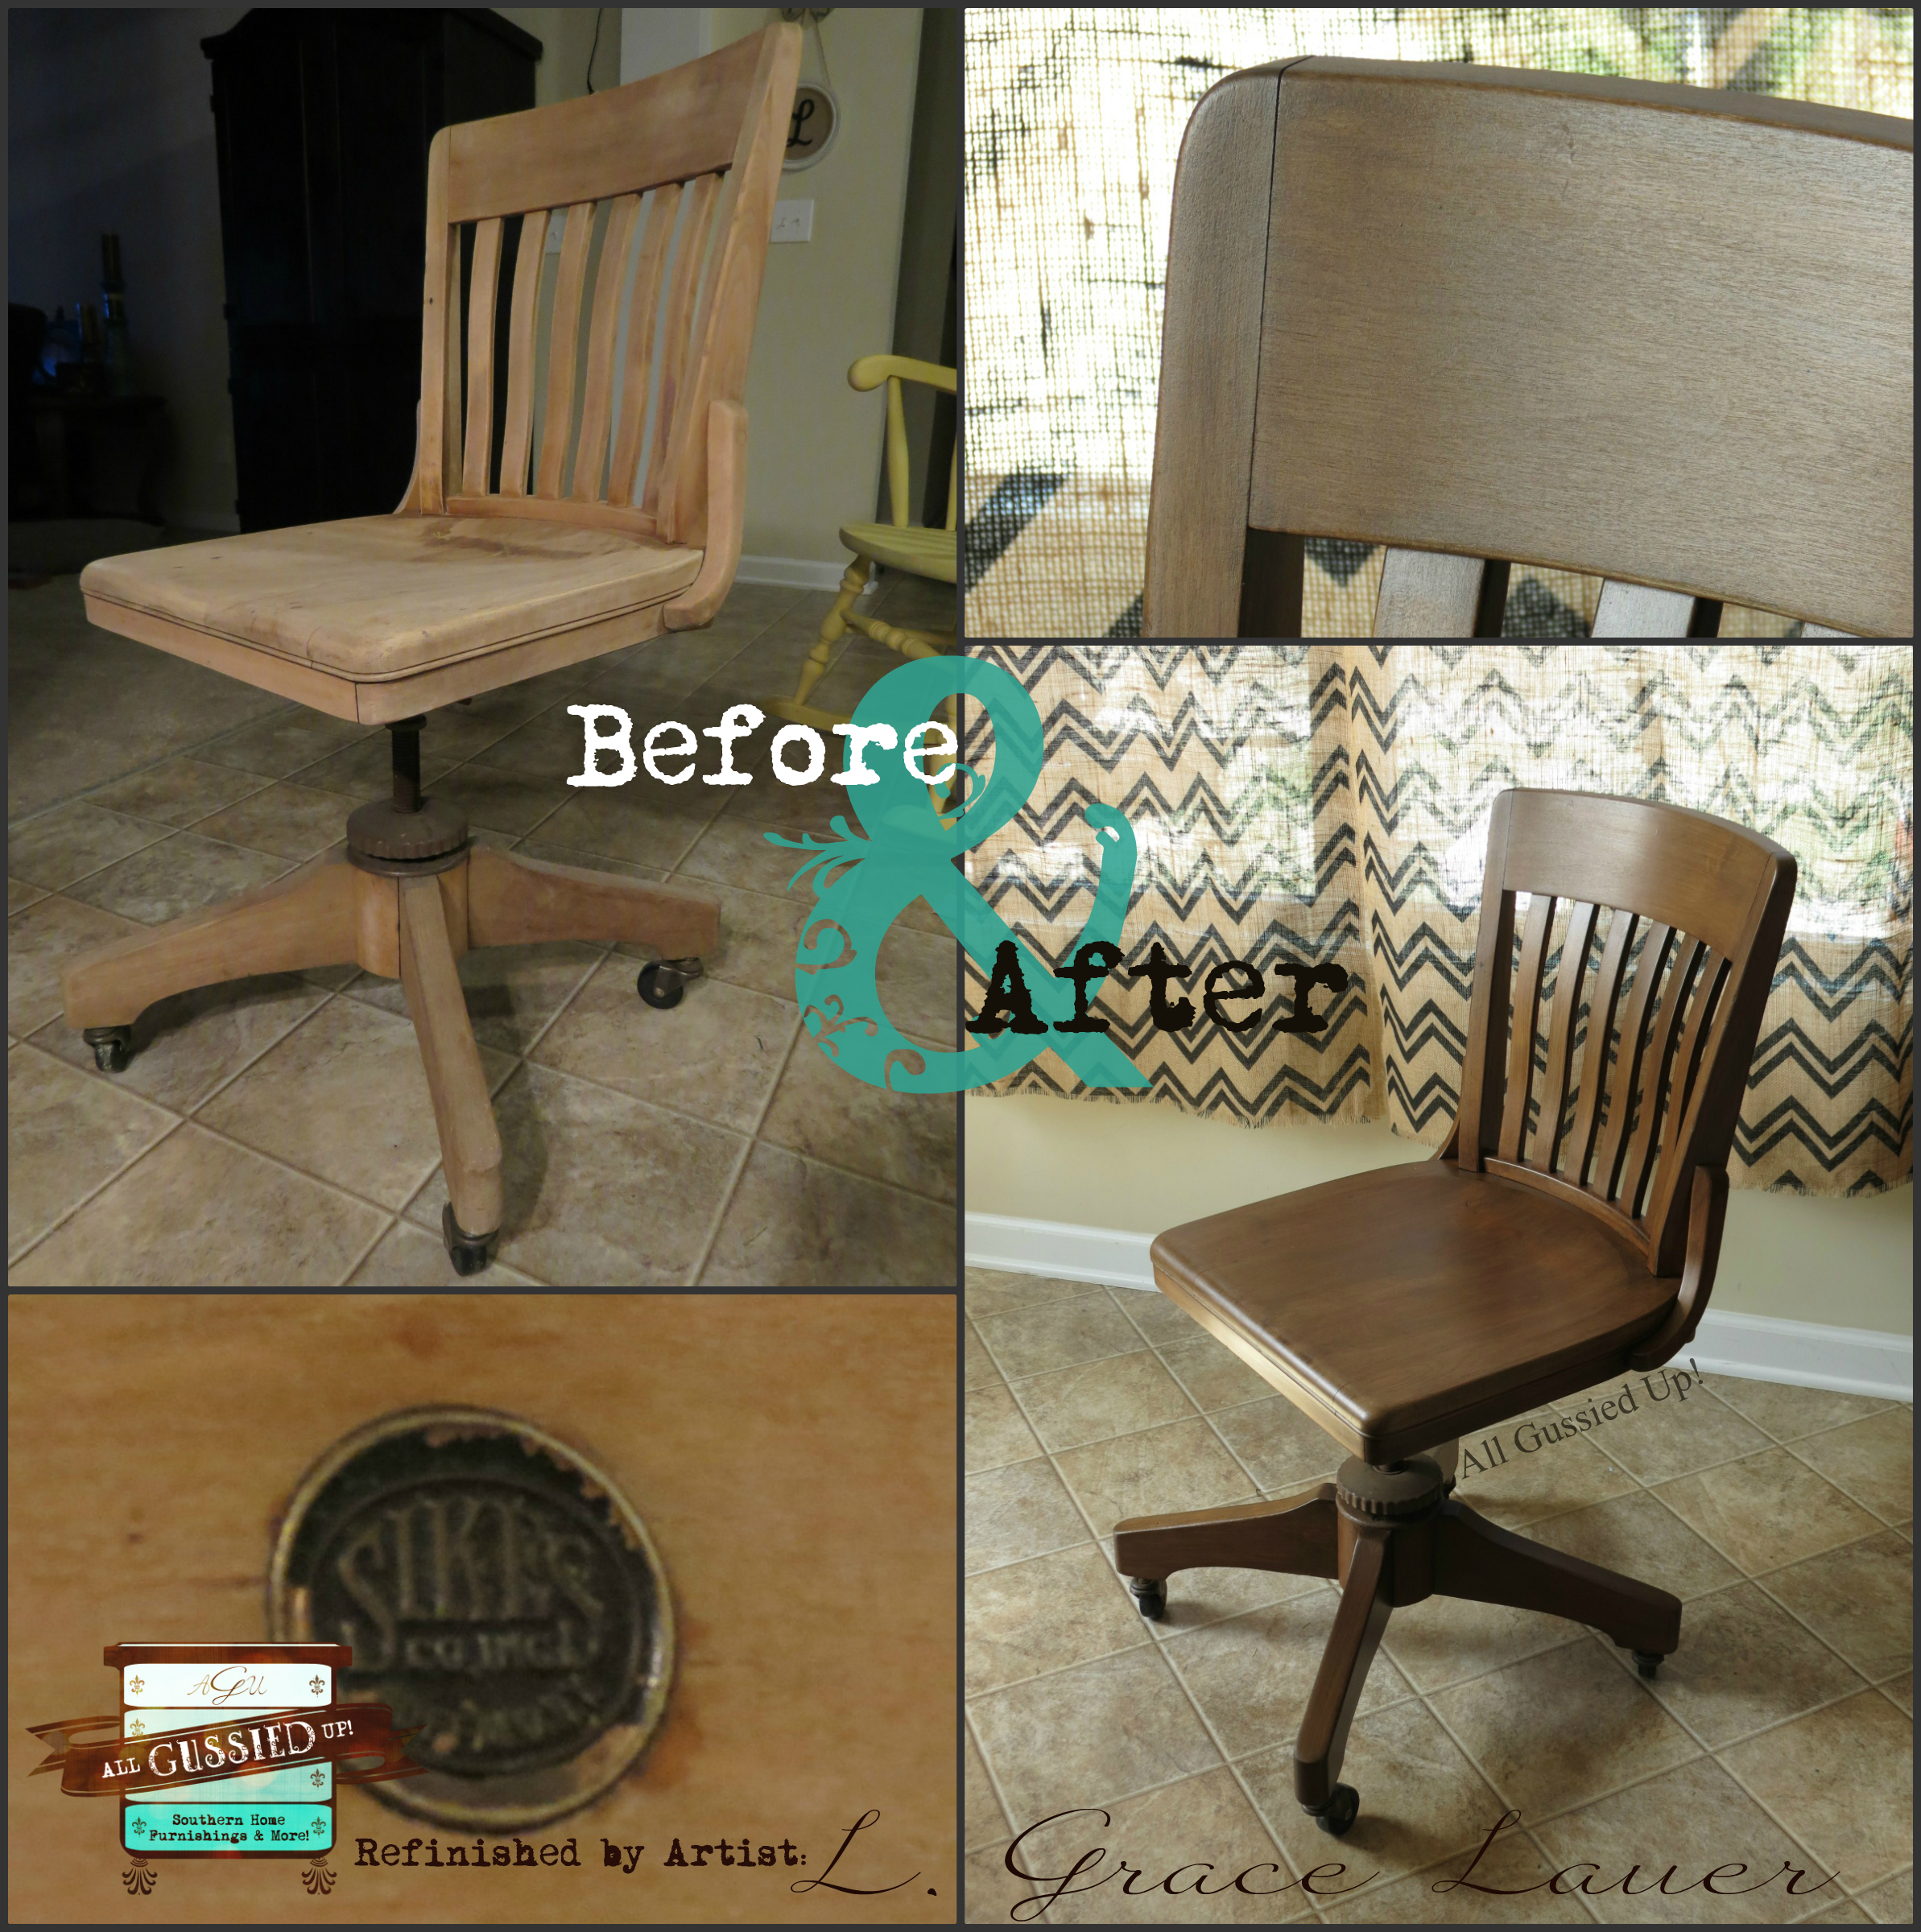 Sikes office chair mahogany hazelnut revax old gold shimmer shabby paints All Gussied Up L Grace Lauer